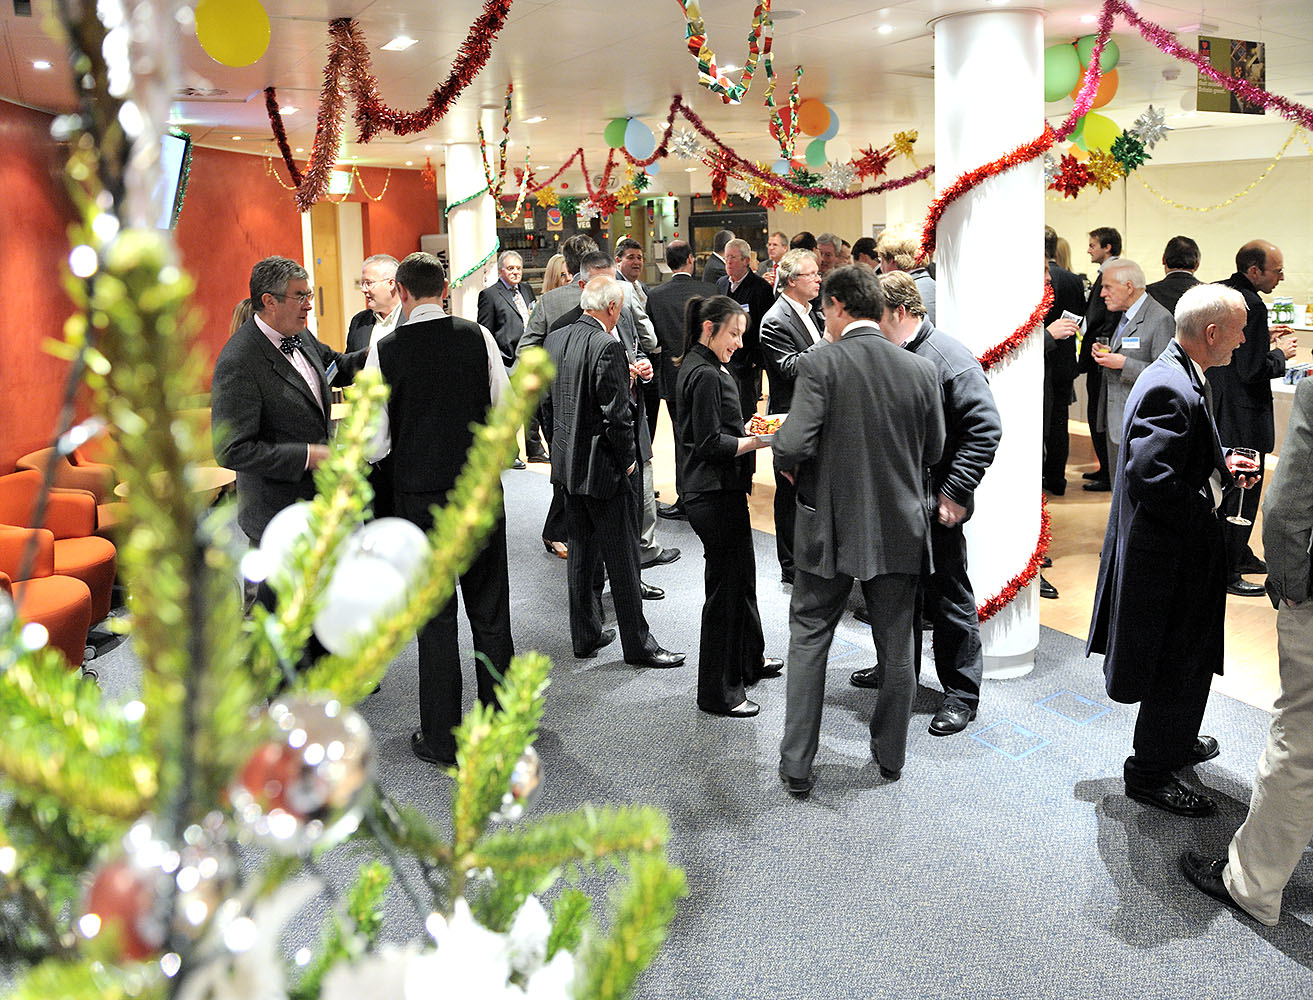 Event photography, image of a Christmas event, people chatting